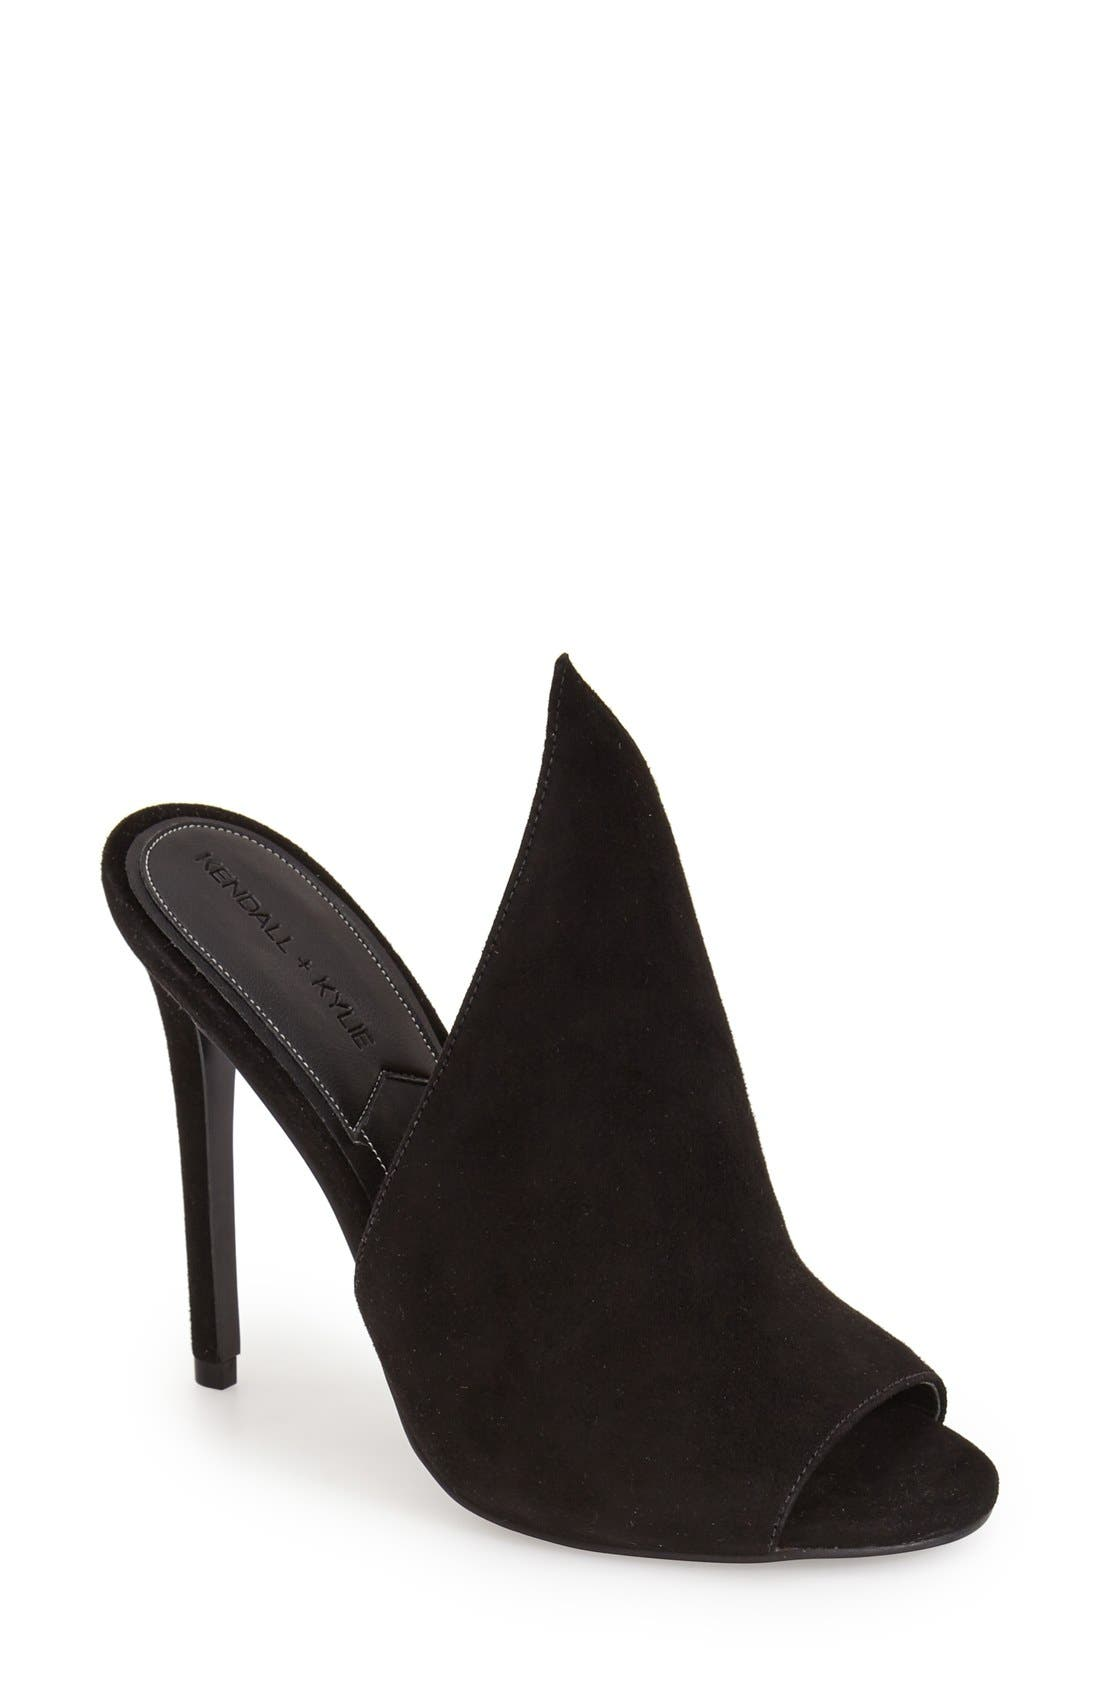 'Essie' Mule,                         Main,                         color, Black Suede